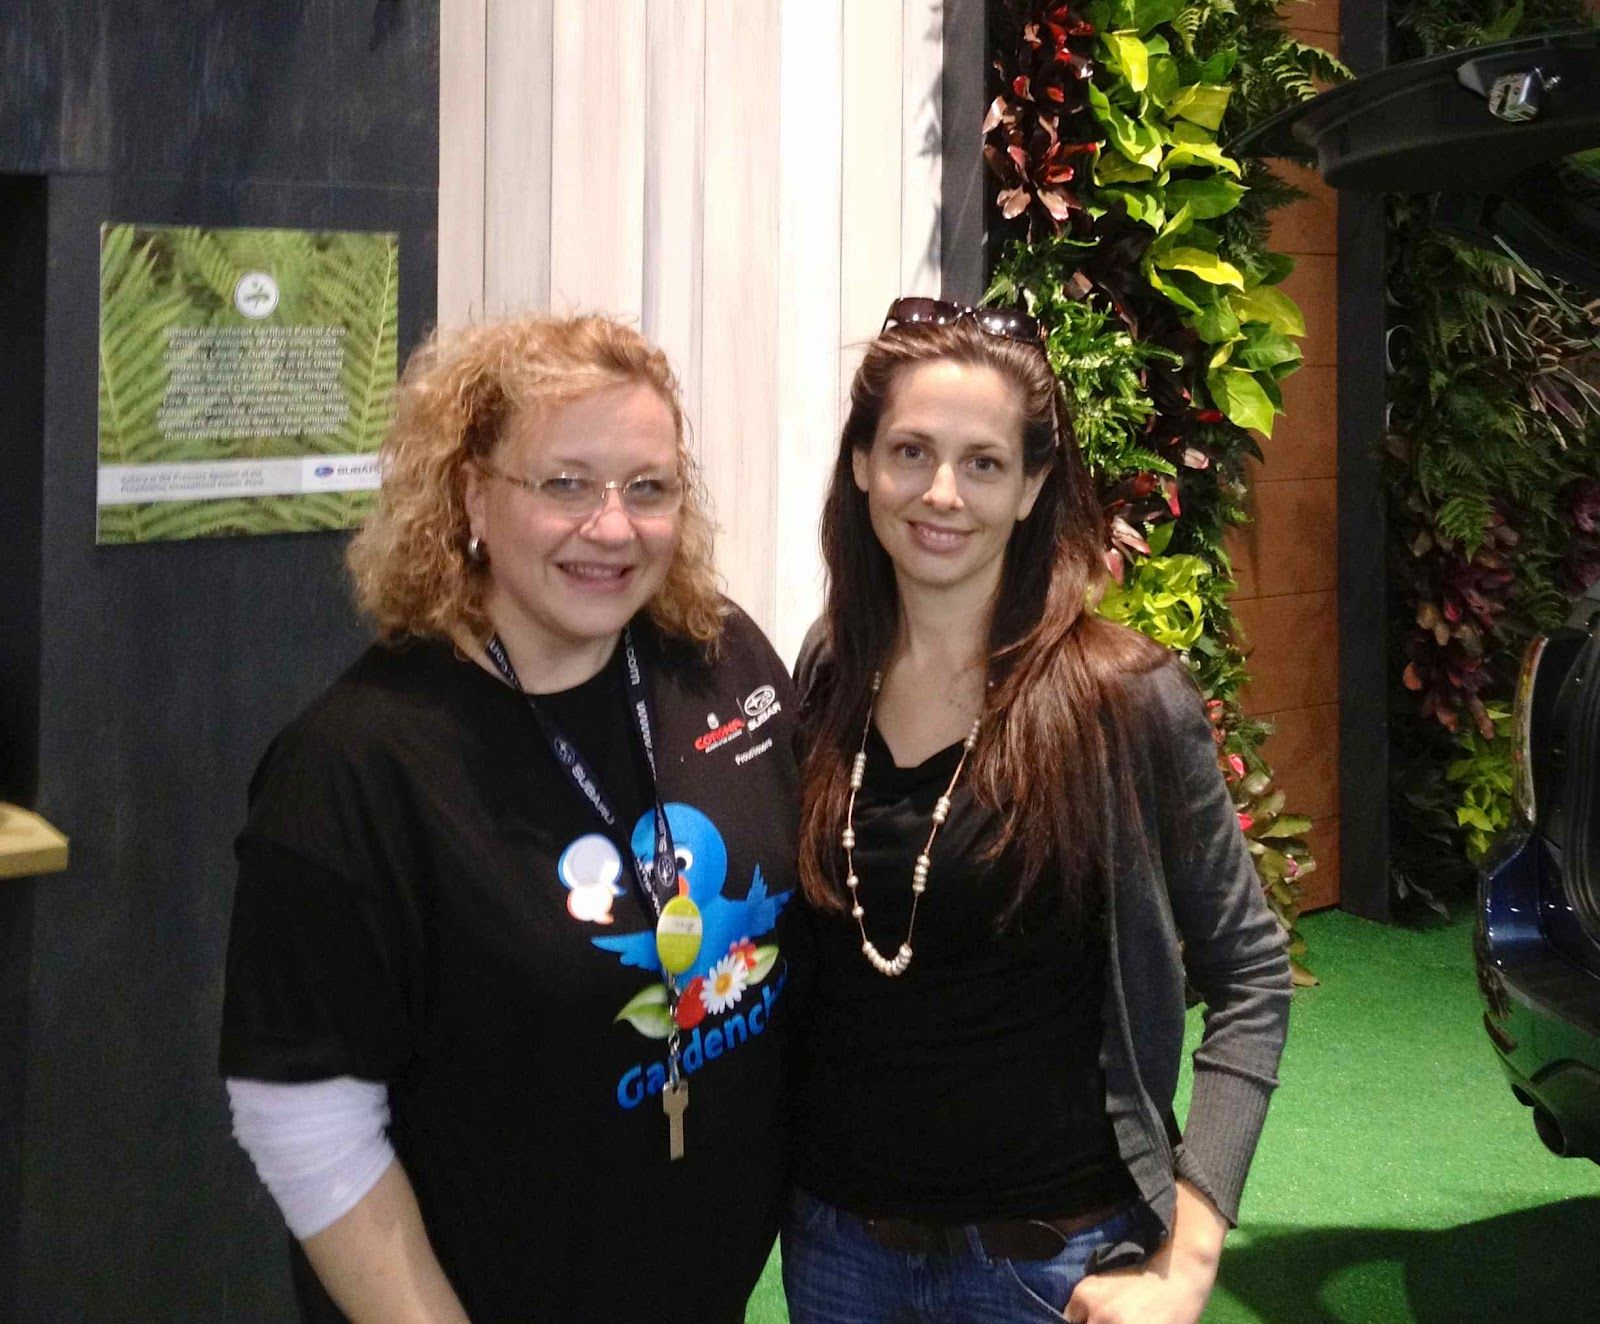 Me and Brenda Haas, administrator and founder of #gardenchat on twitter at the Philadelphia Flower Show in March 2012